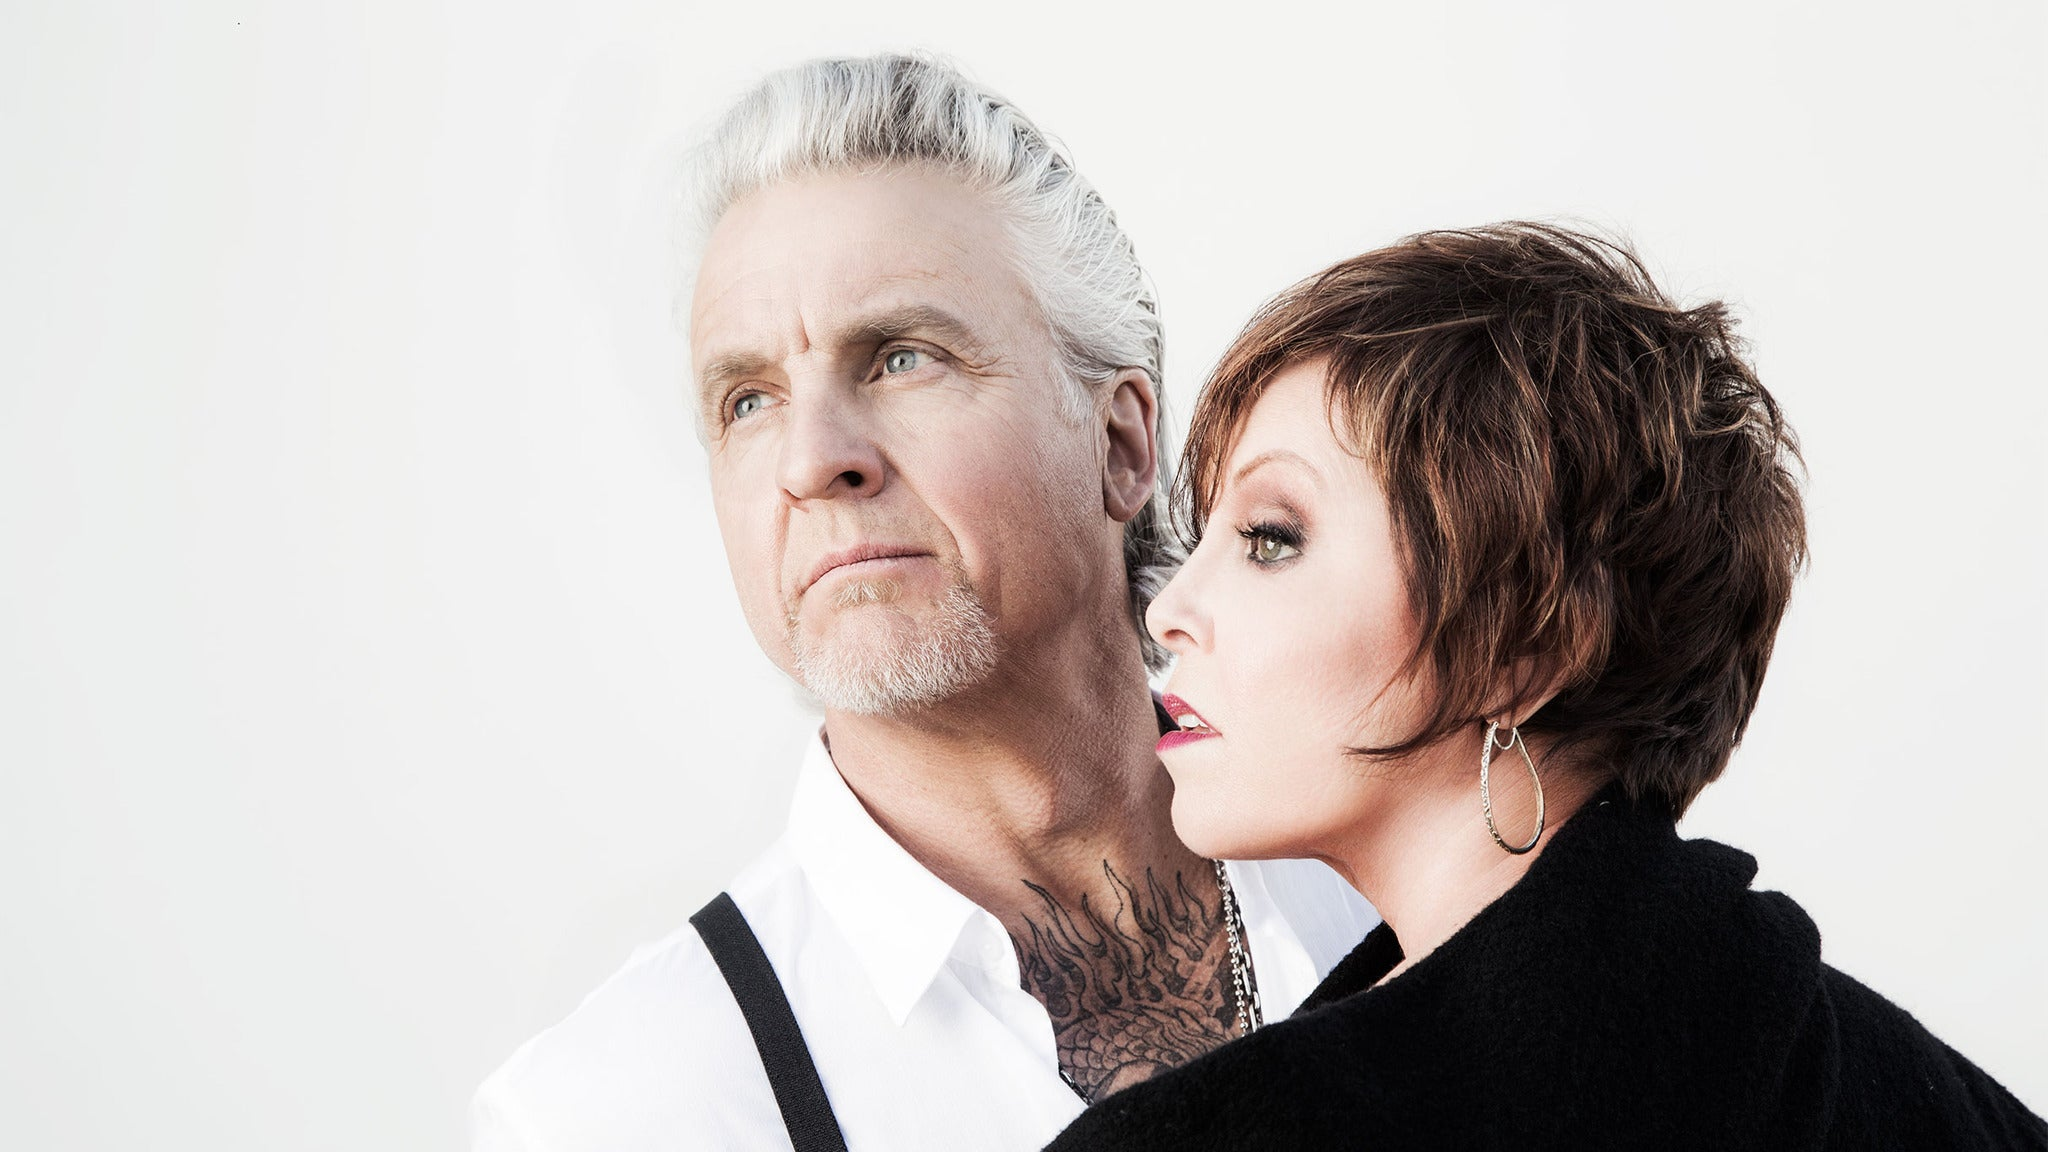 Pat Benatar & Neil Giraldo at French Lick Resort